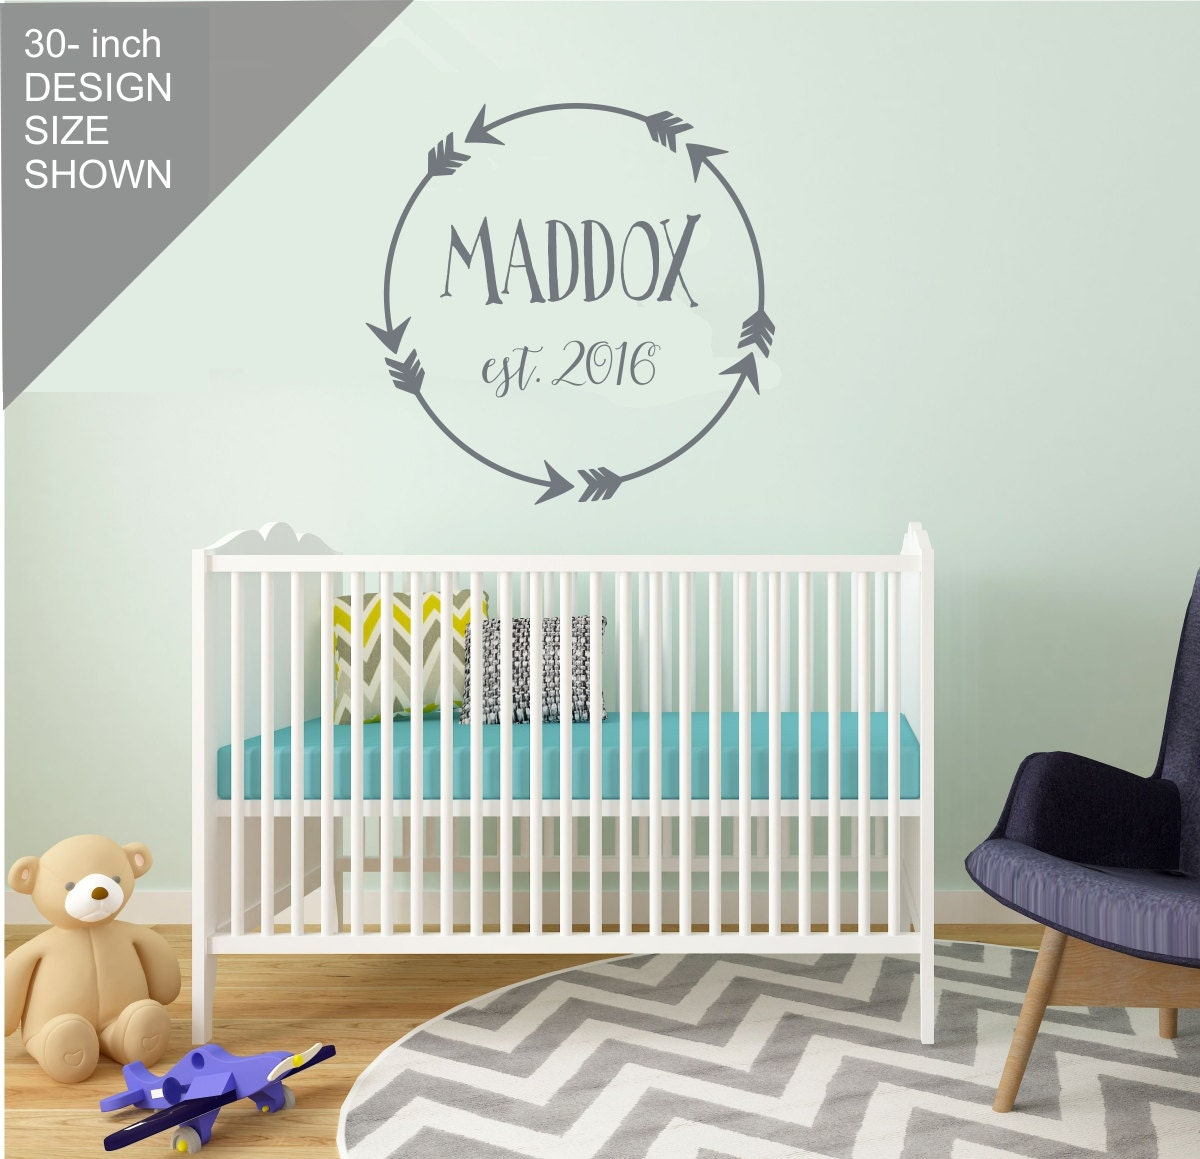 Boy nursery wall decal personalized boy nursery decor Boys wall decor